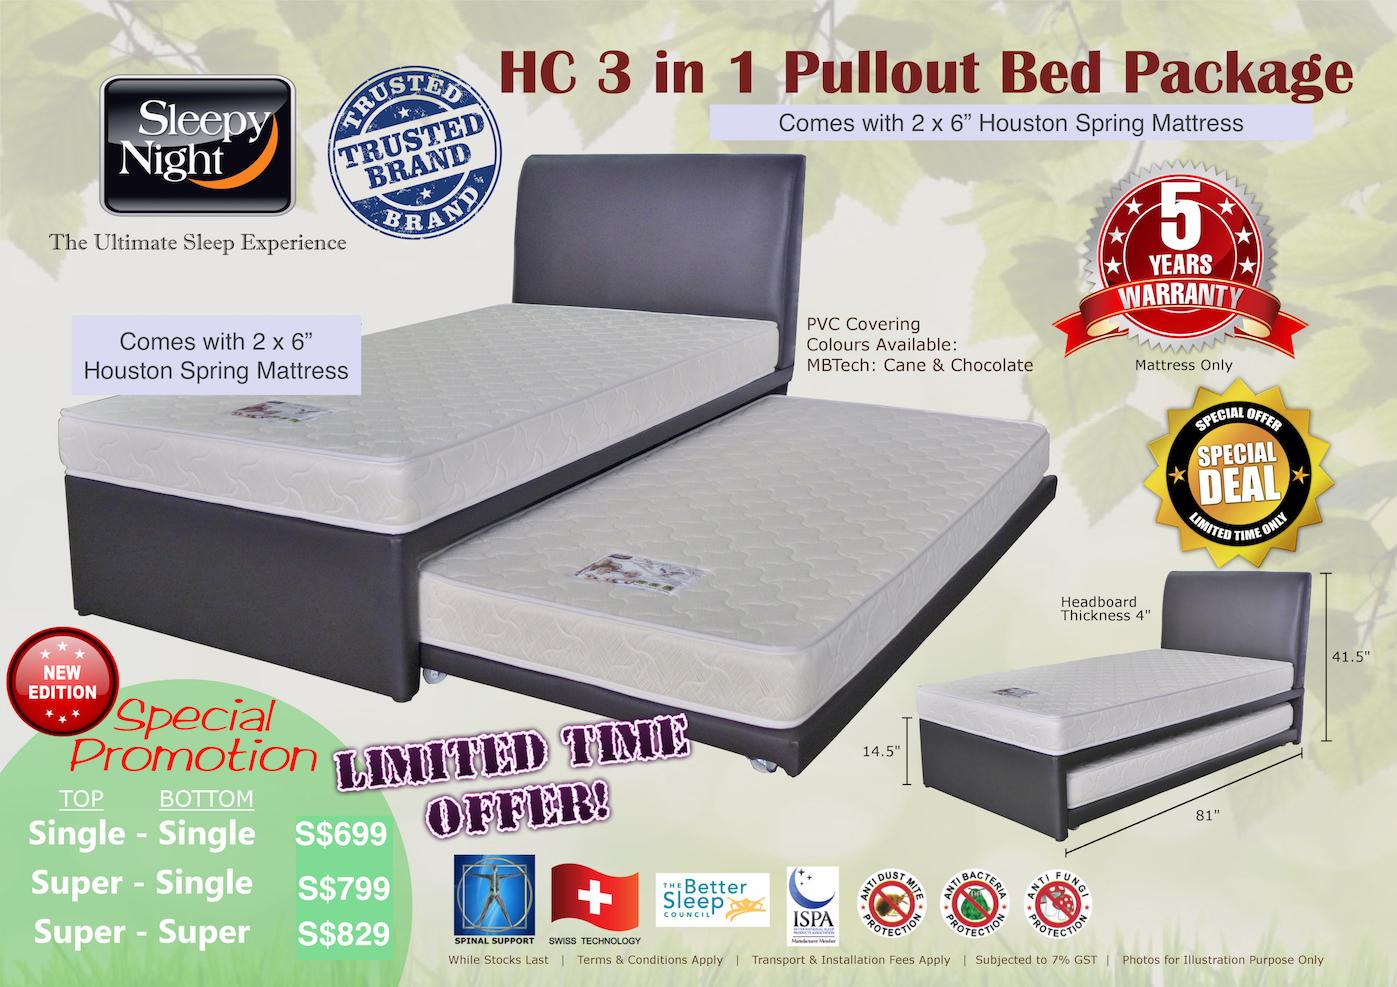 Sleepy Night 3 in 1 Pullout Bed Package - Single Top/Bottom, Houston 6 (Chocolate)